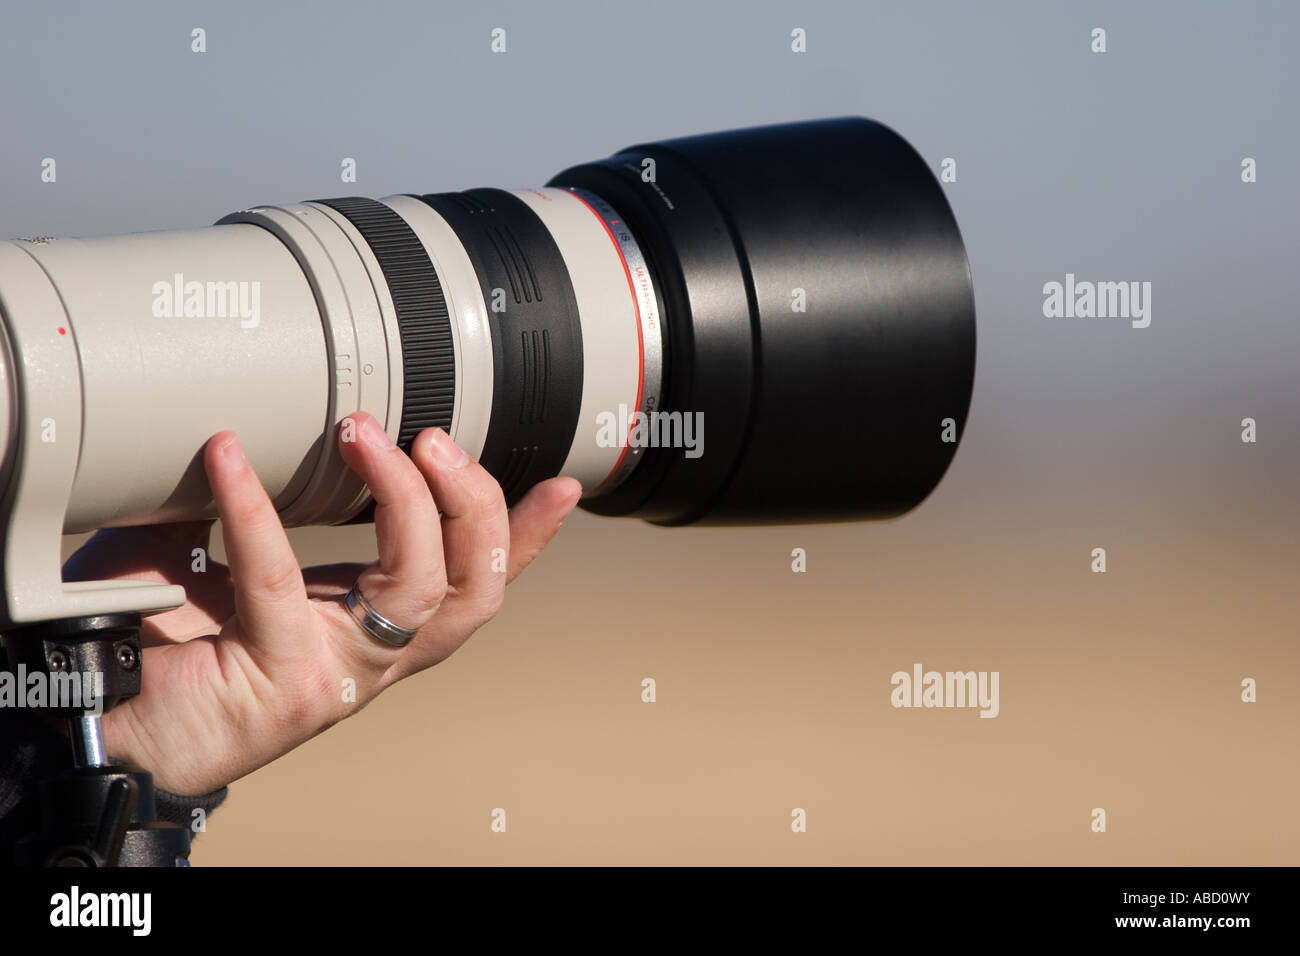 A photographer holds up a Canon 100-400L telephoto lens. - Stock Image